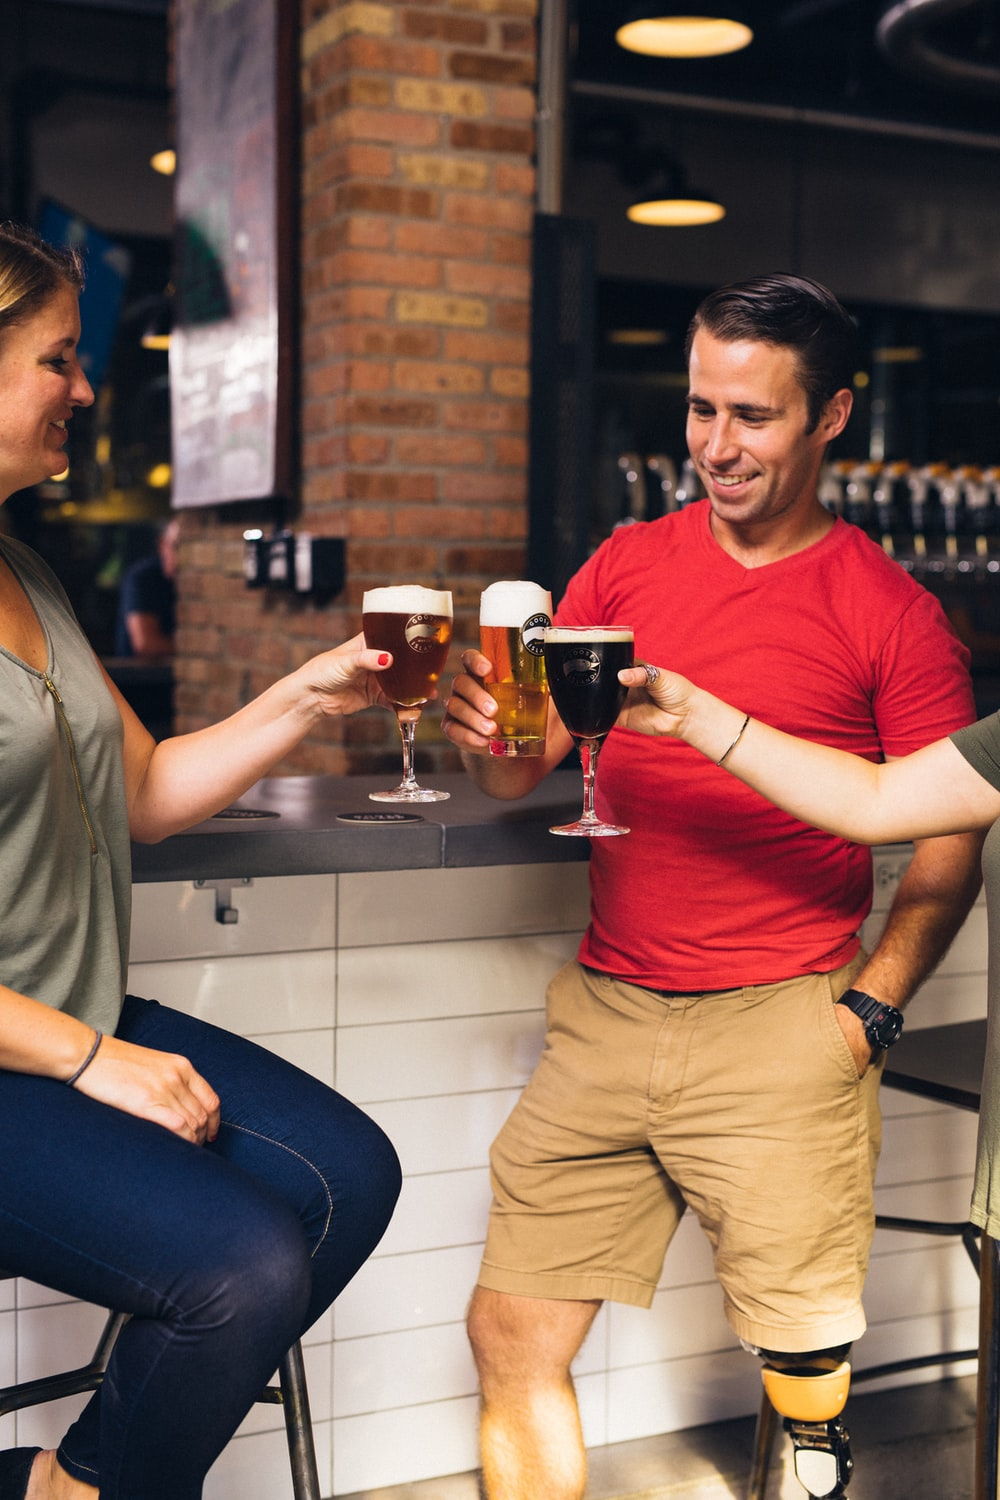 woman sitting on bar stool near another two person toasting beer